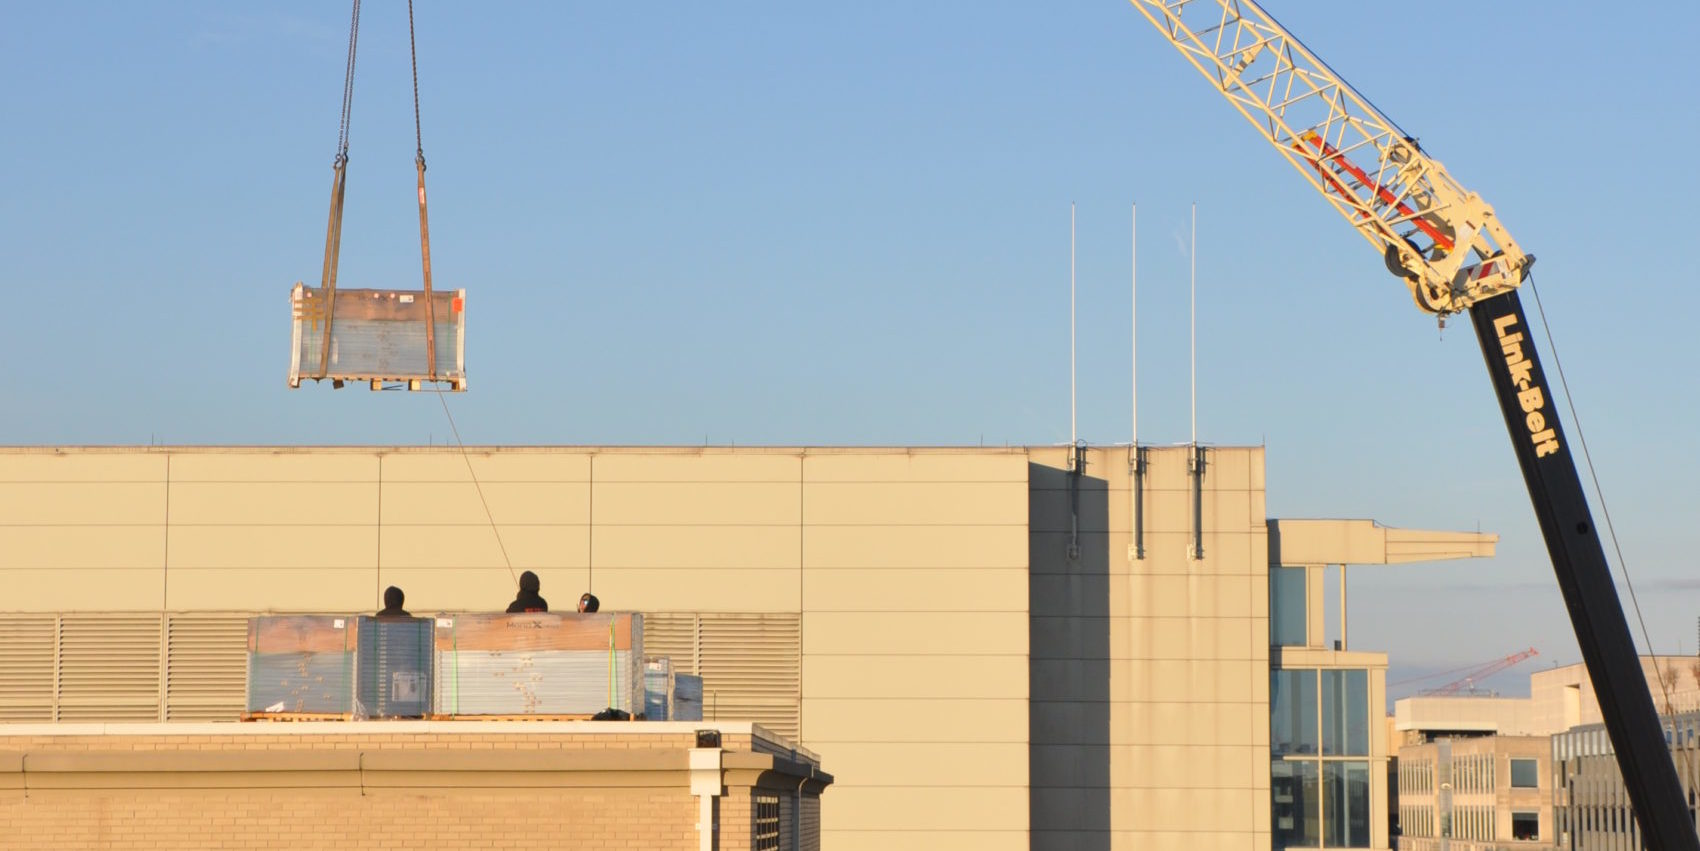 Three people are standing behind panels packages of panels on top of a building. A crate suspended by a crane is above them. Behind them is a building and to the right is the crane. Buildings are in the backdrop on the right and there is a clear, bright sky.